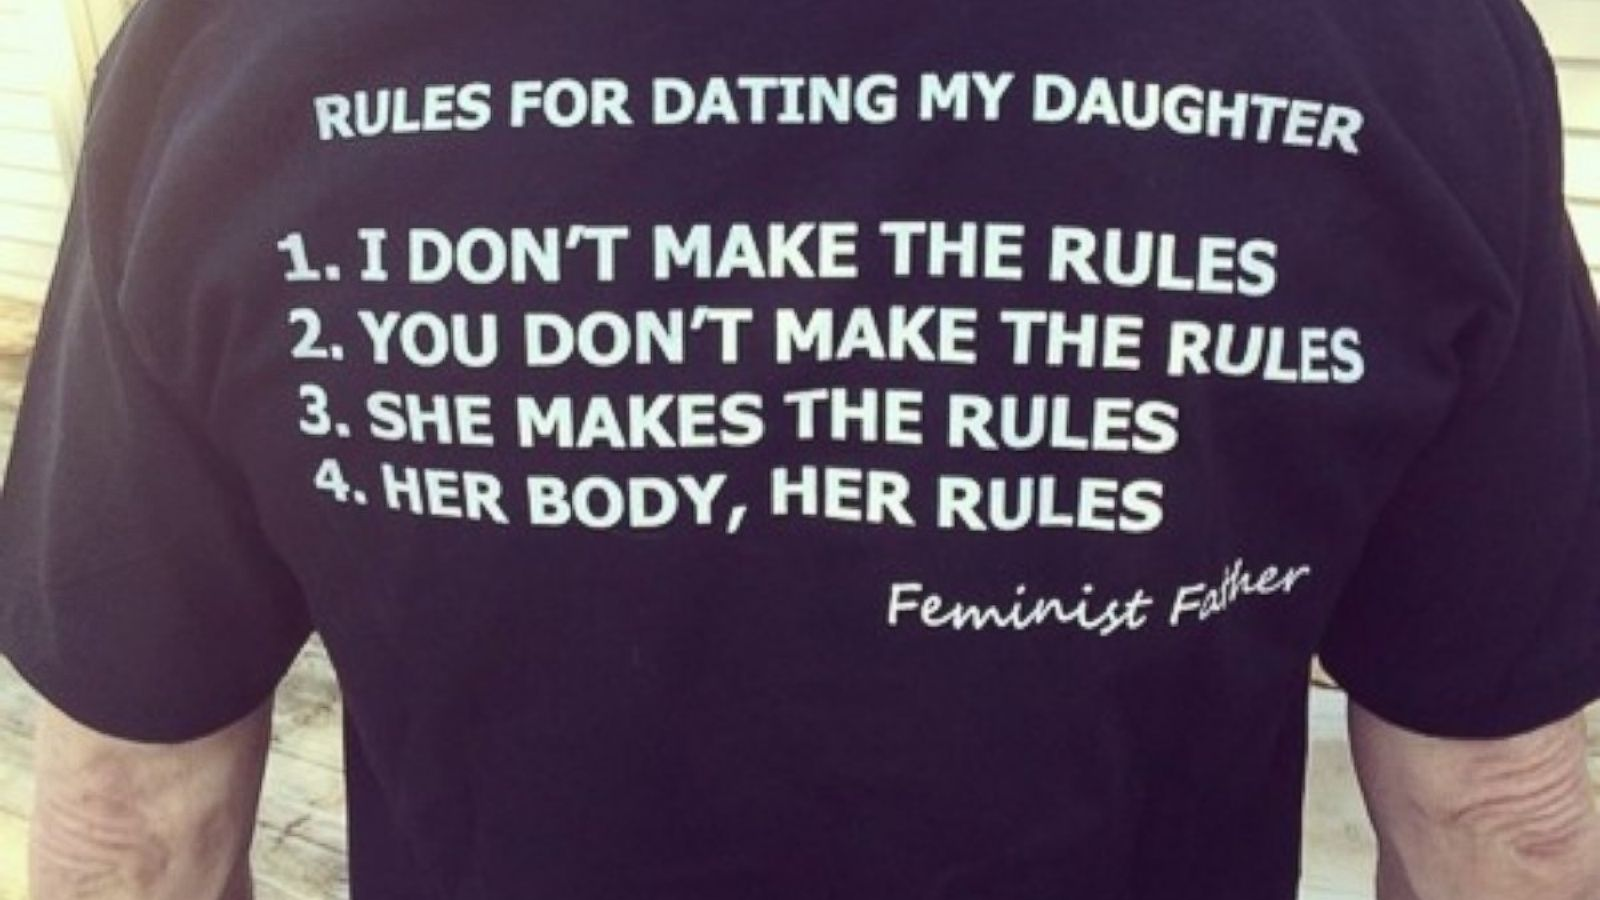 dads rules for dating daughter shirt